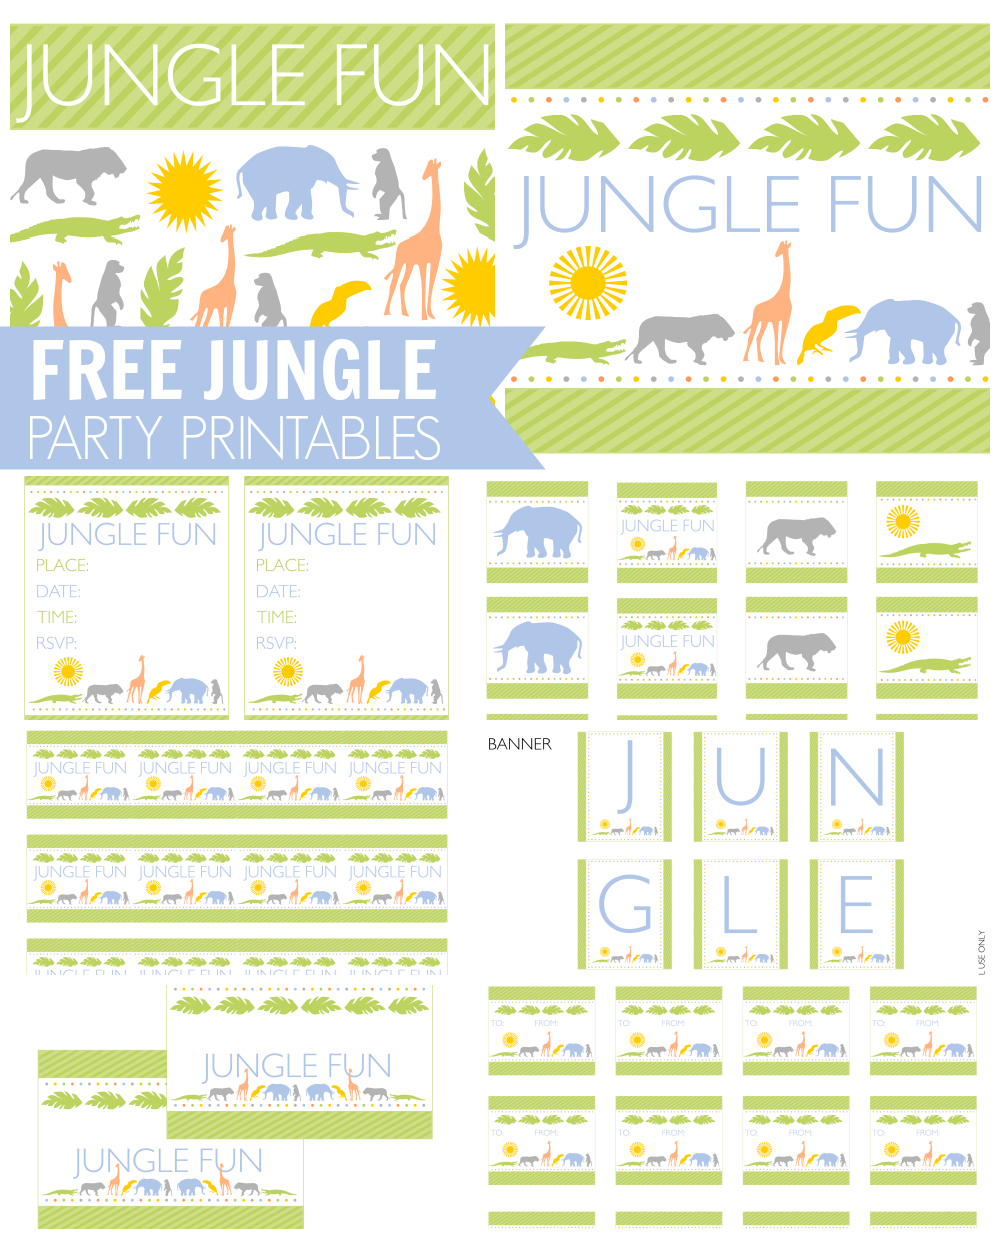 Free Jungle Party Printables From Printabelle | Catch My Party - Free Party Printables